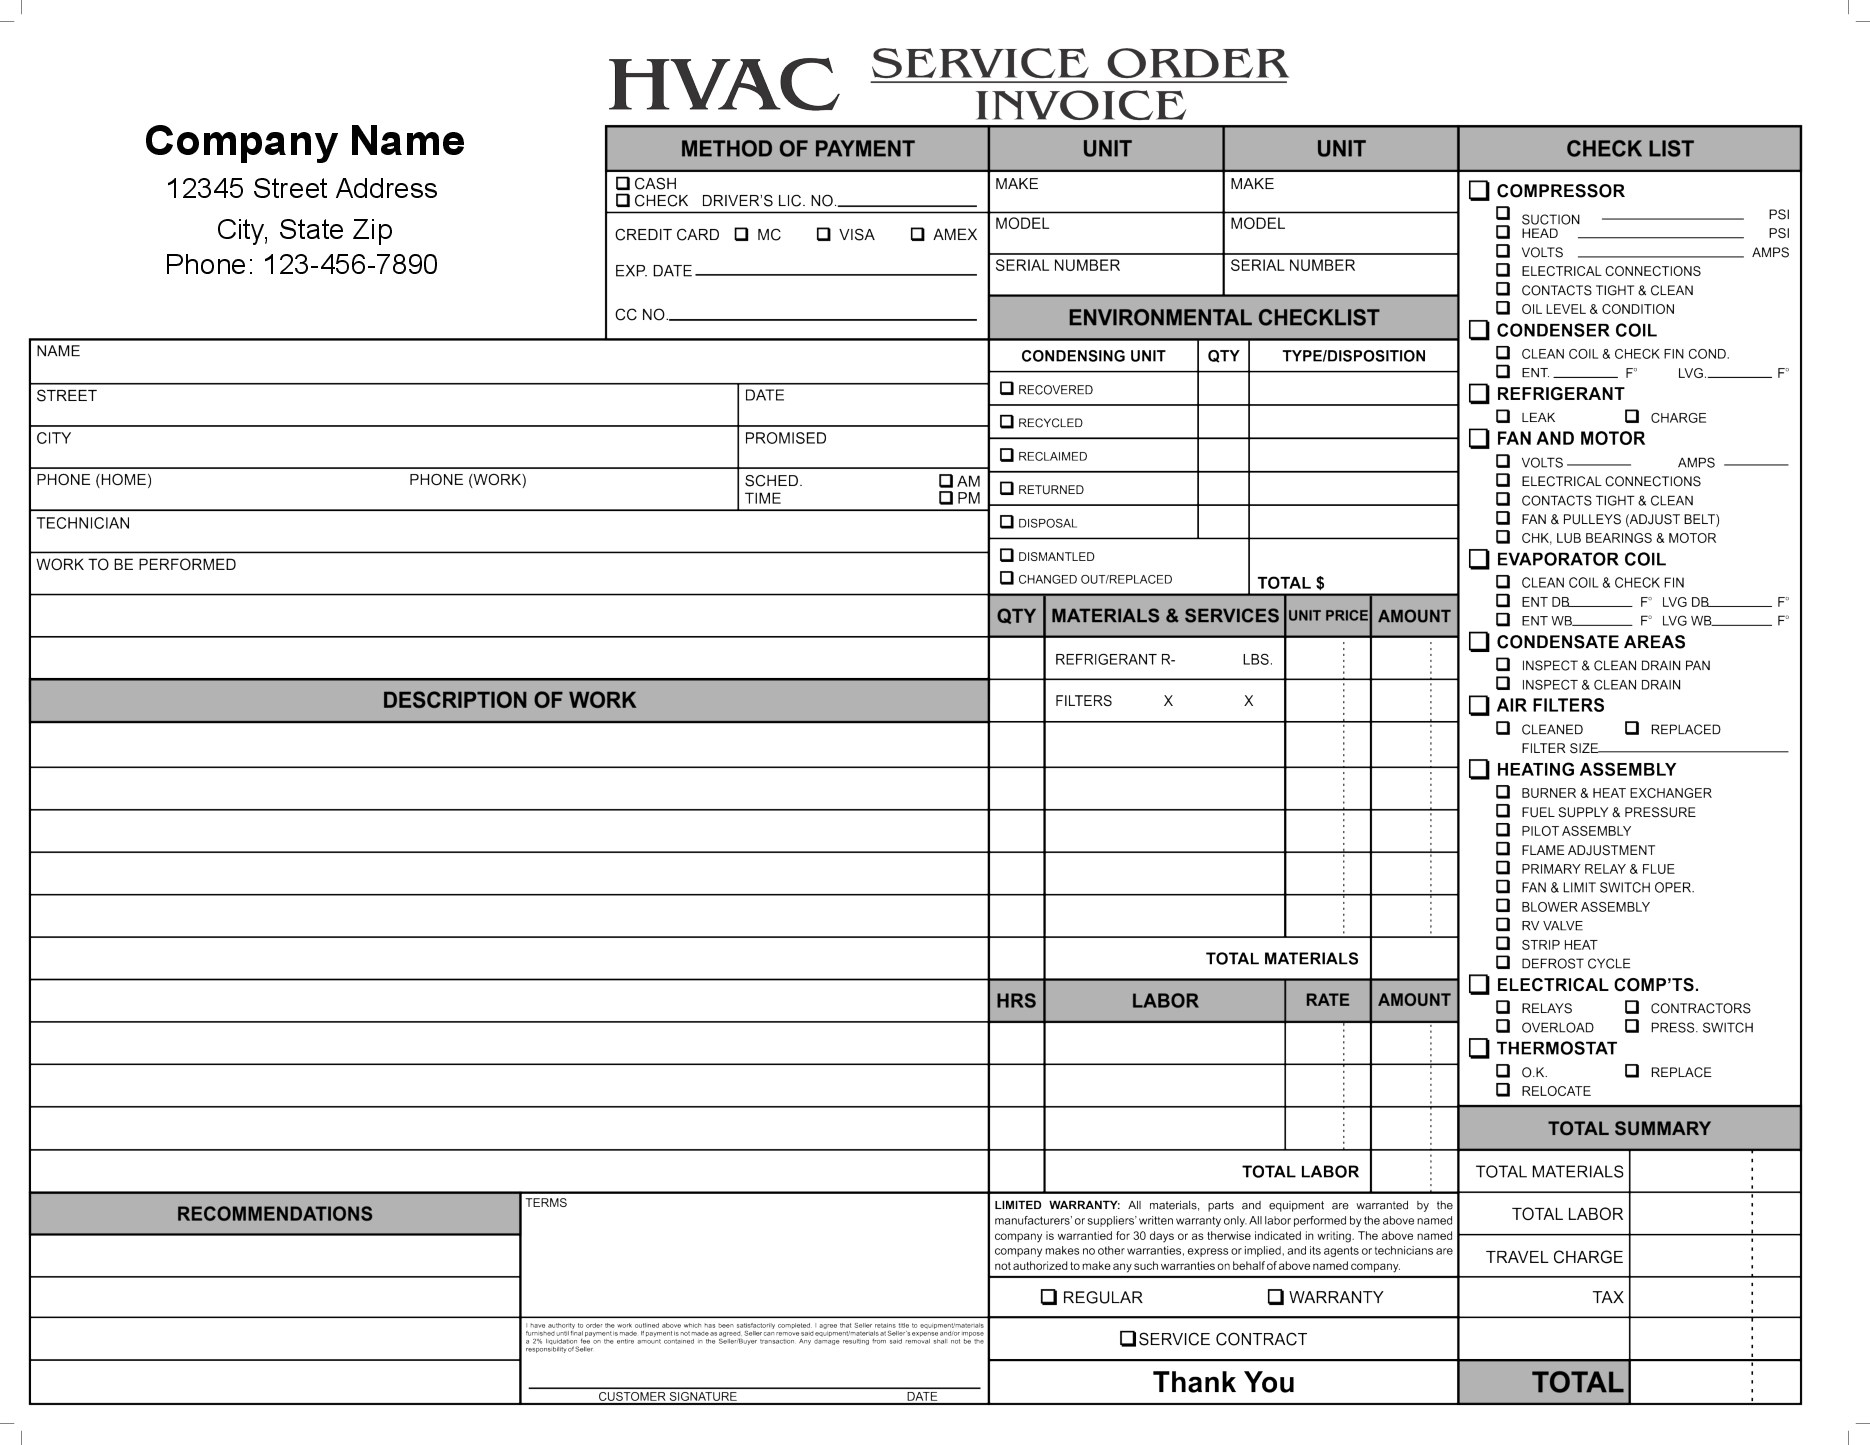 free hvac invoice template hvac plumbing amp electrical service hvac service invoice